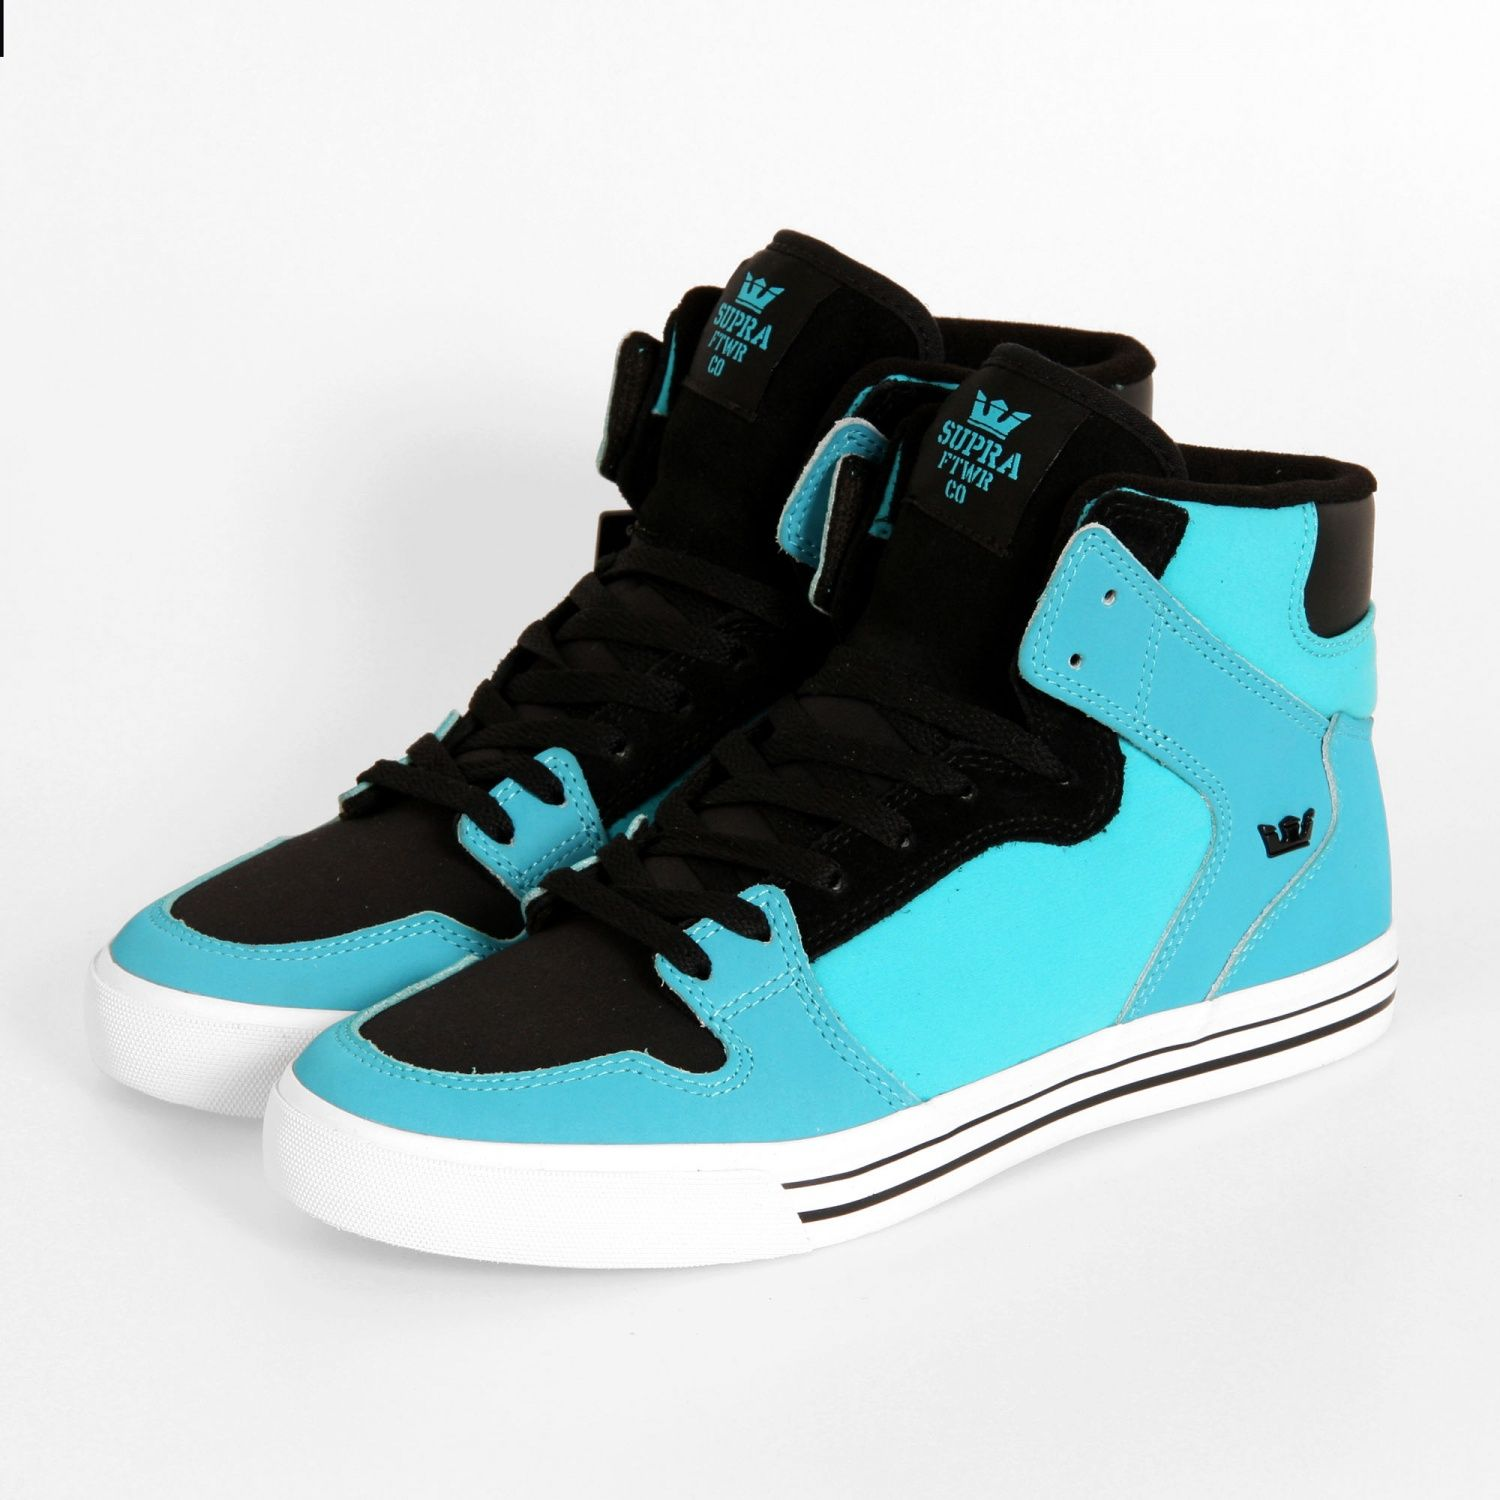 fdc4391ccc366e Supra Shoes - Vaider (Blue Black White)